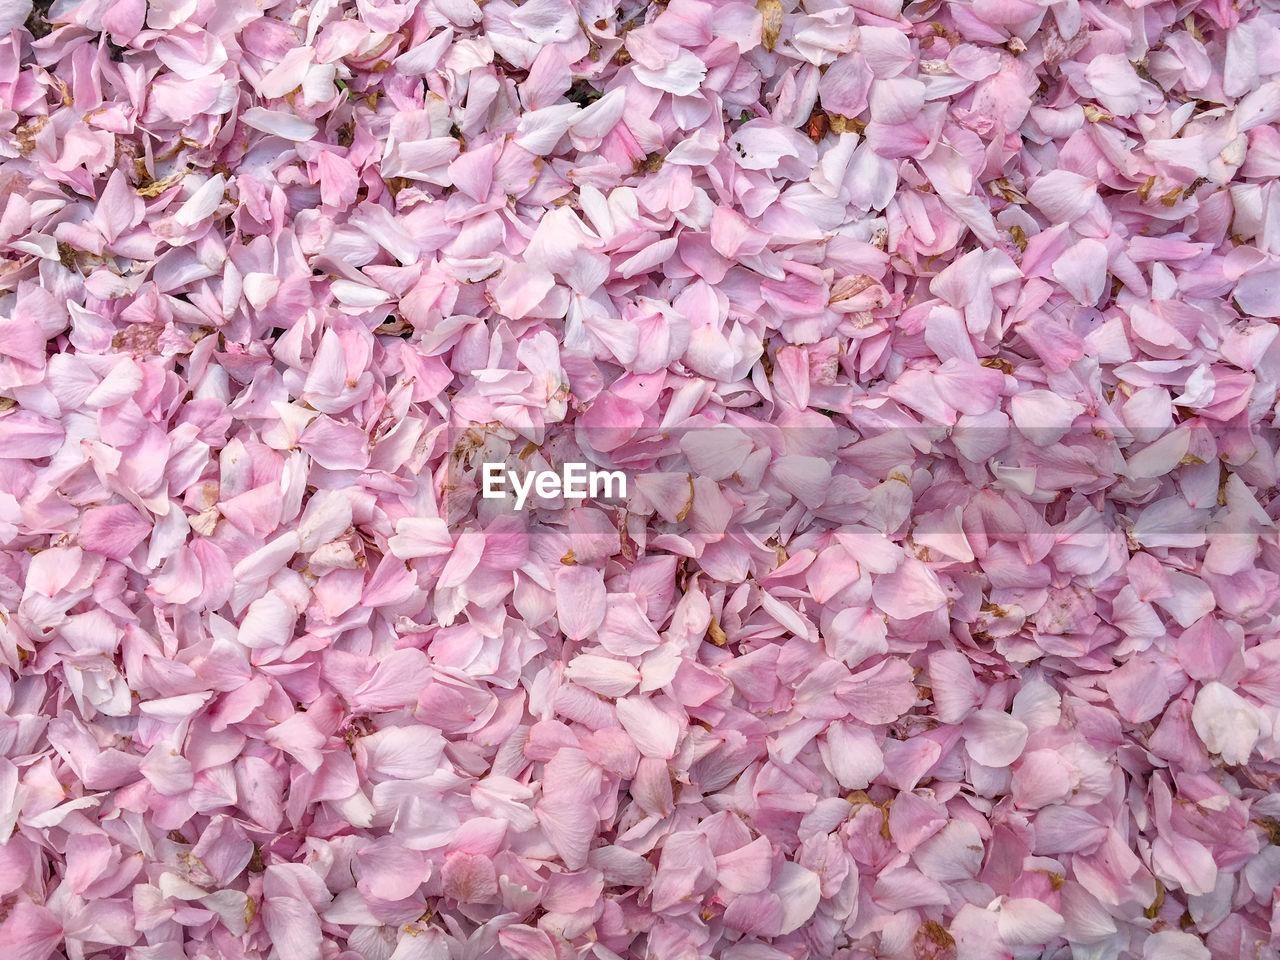 pink color, full frame, backgrounds, abundance, no people, flower, flowering plant, freshness, close-up, large group of objects, beauty in nature, plant, vulnerability, petal, fragility, nature, inflorescence, flower head, high angle view, softness, purple, lilac